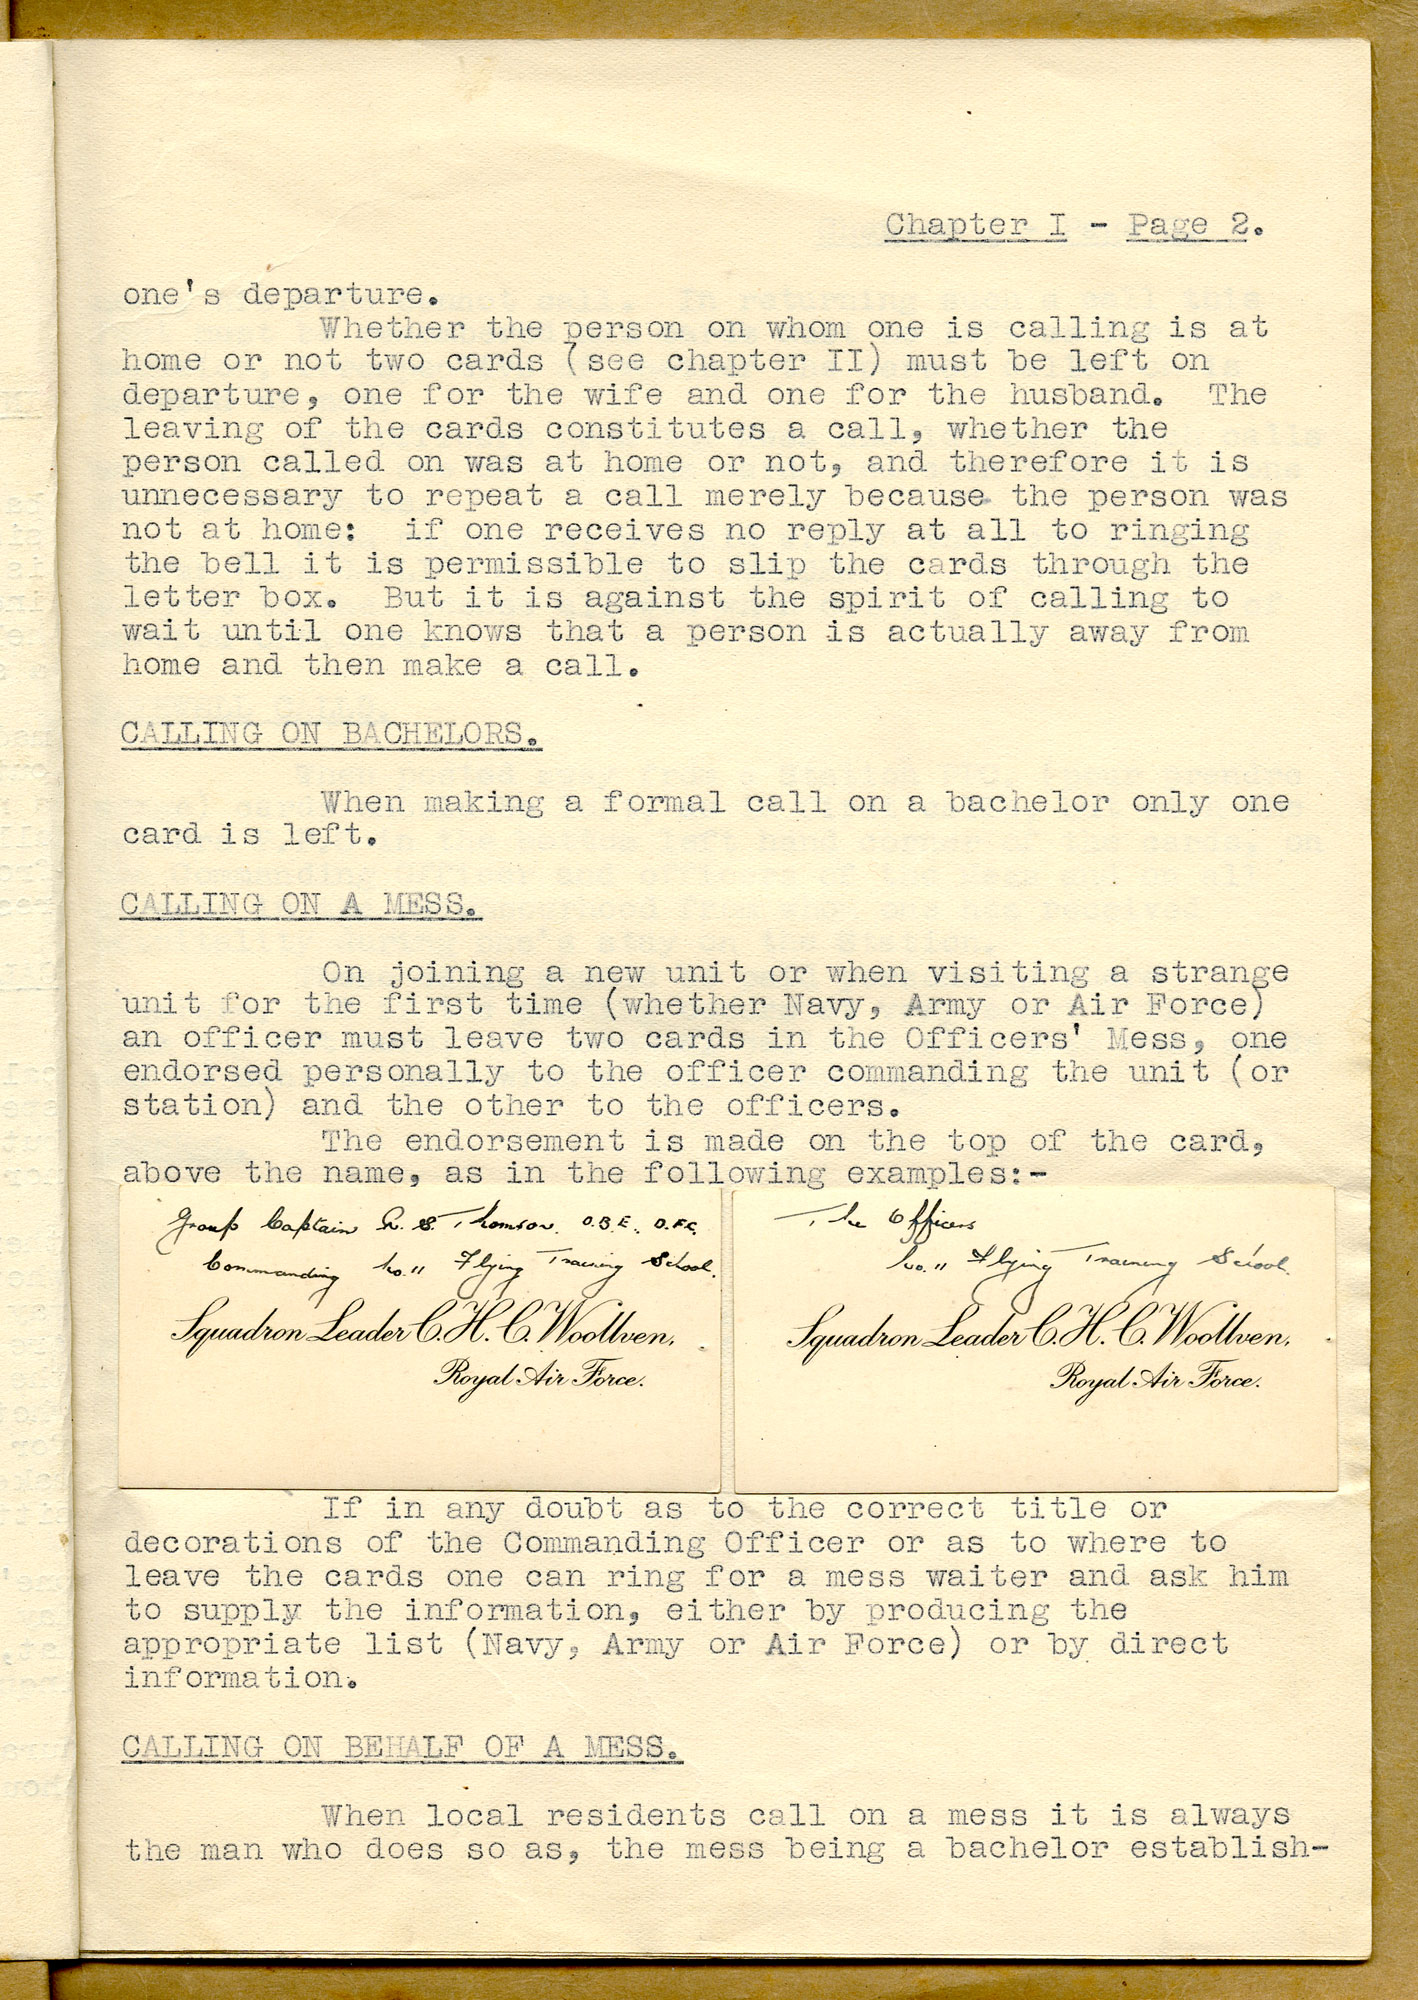 photograph of typed page of rules